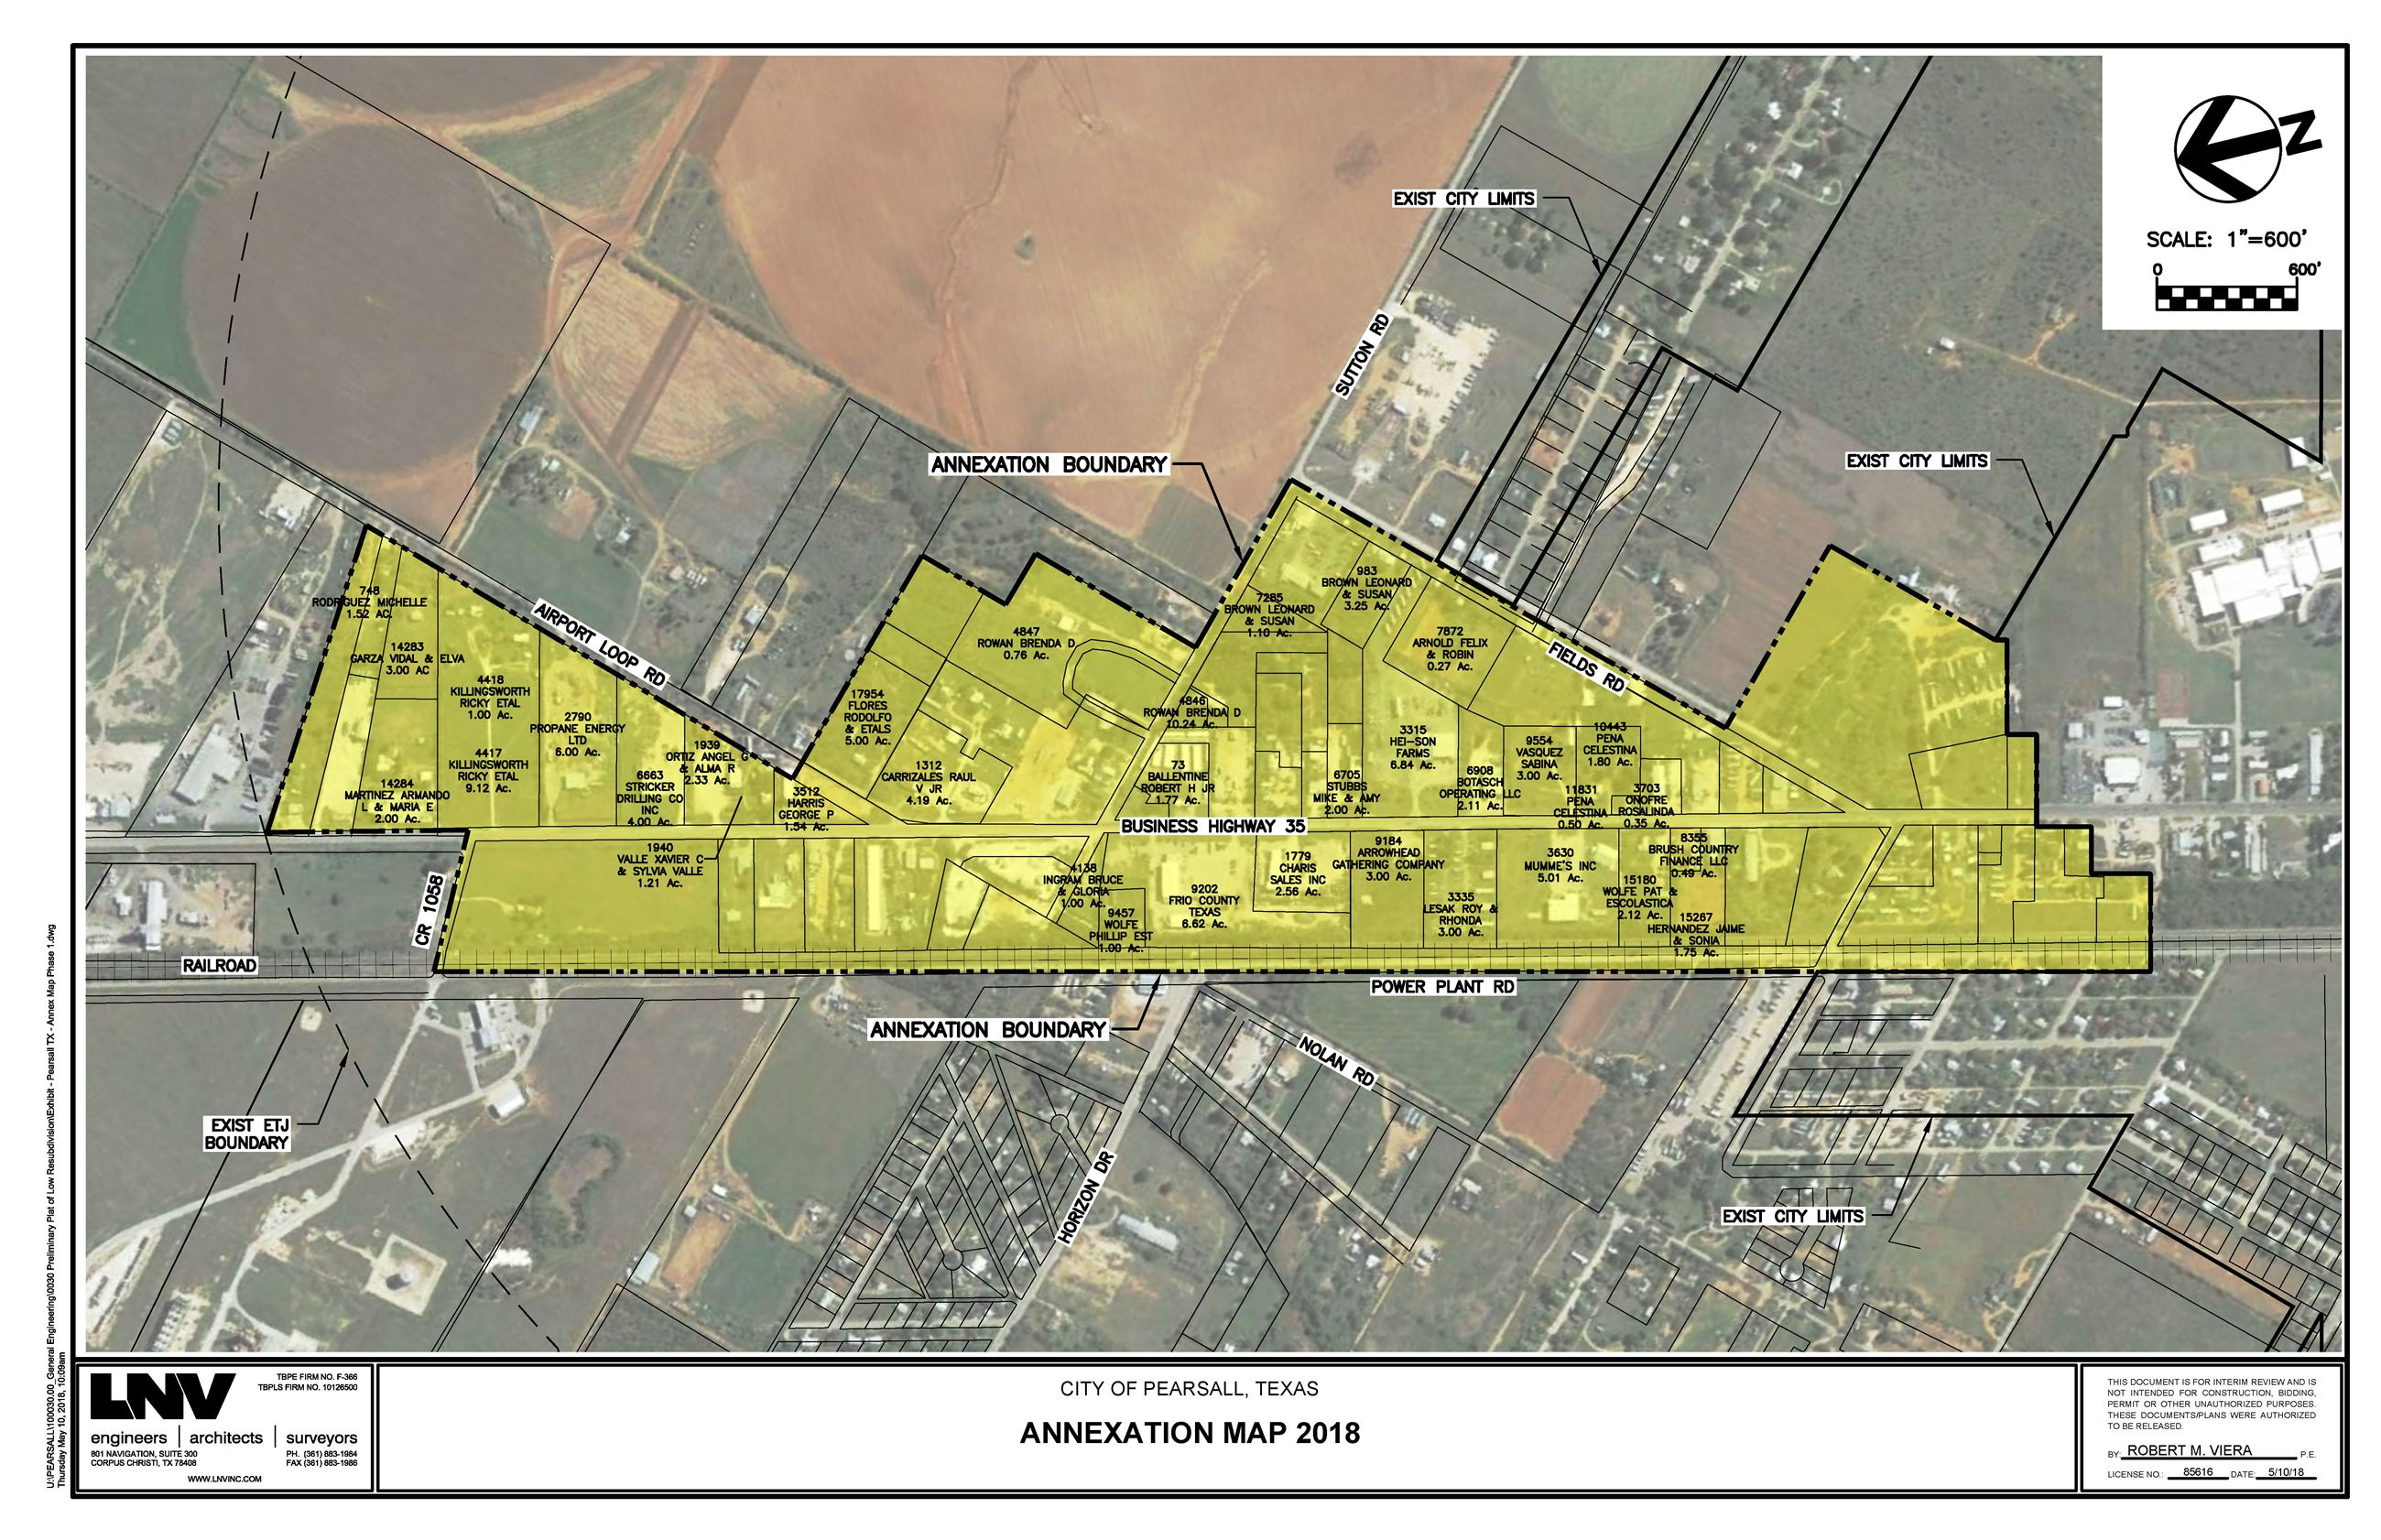 Exhibit - Pearsall TX - Annex Map Phase 1